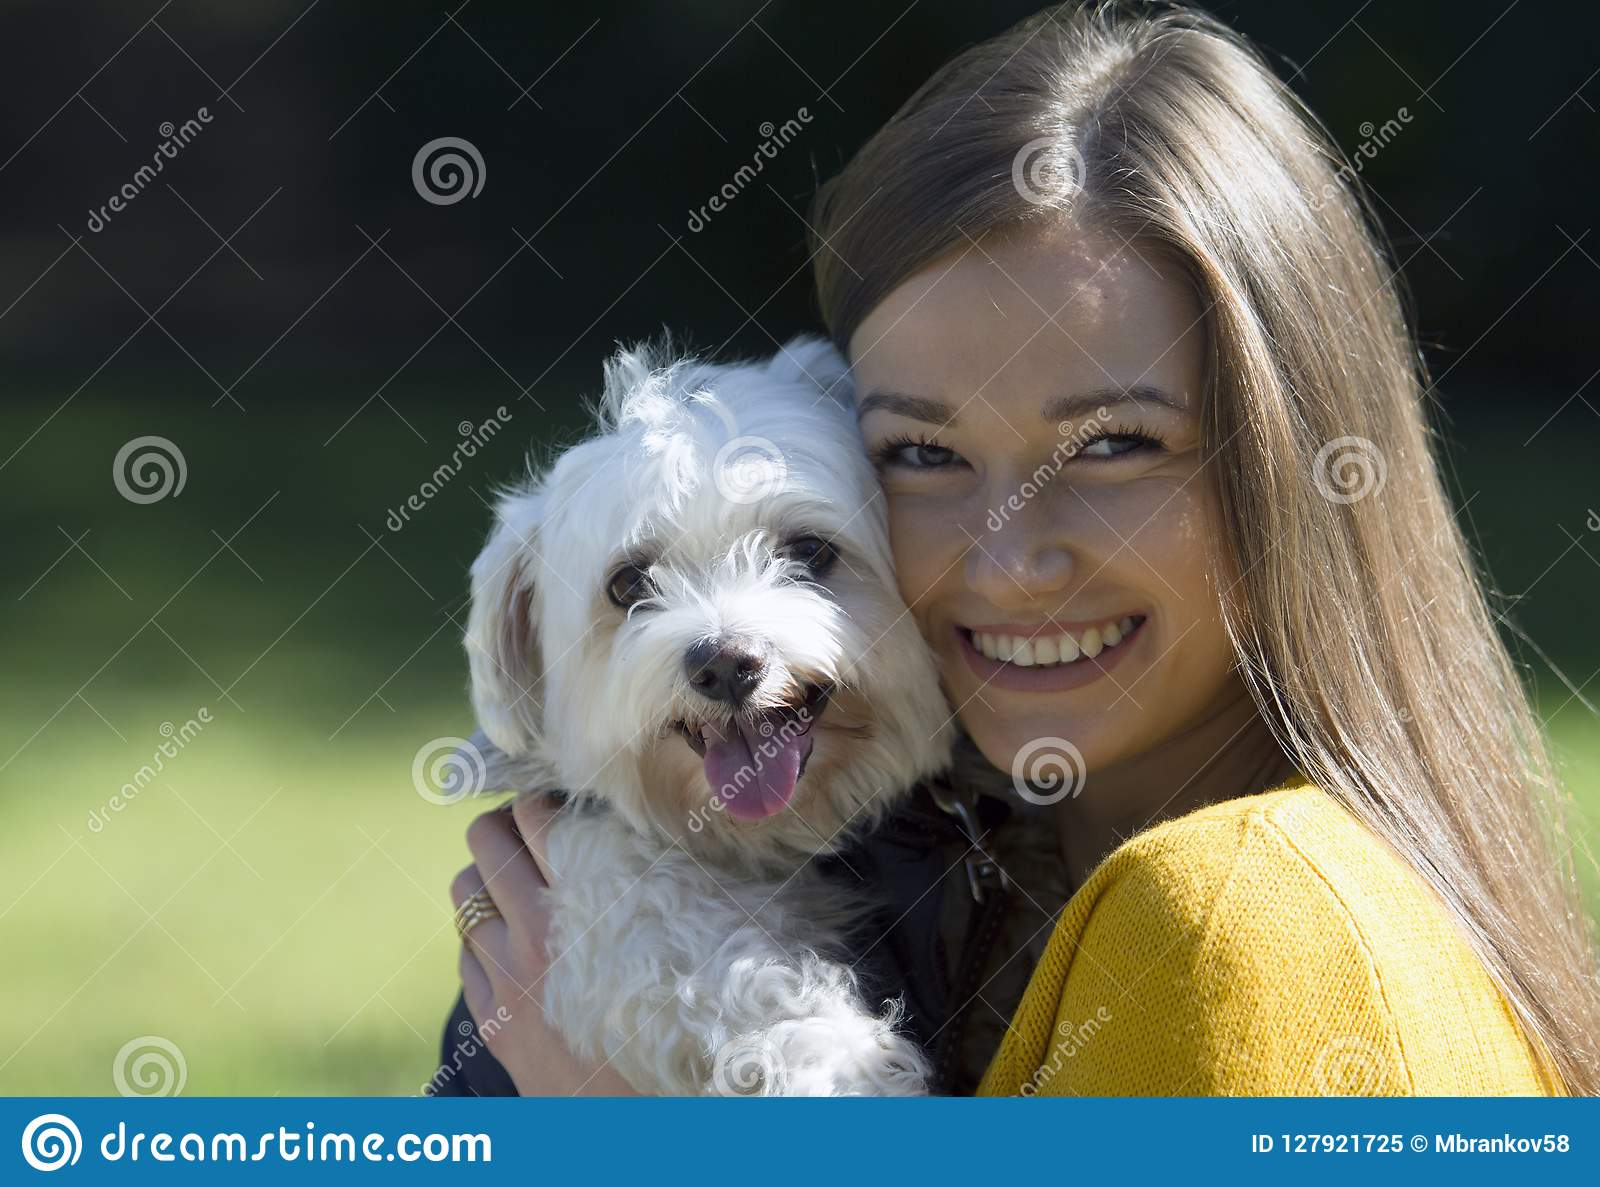 Smiling girl in the embrace of a little white dog.A big smile on her face.